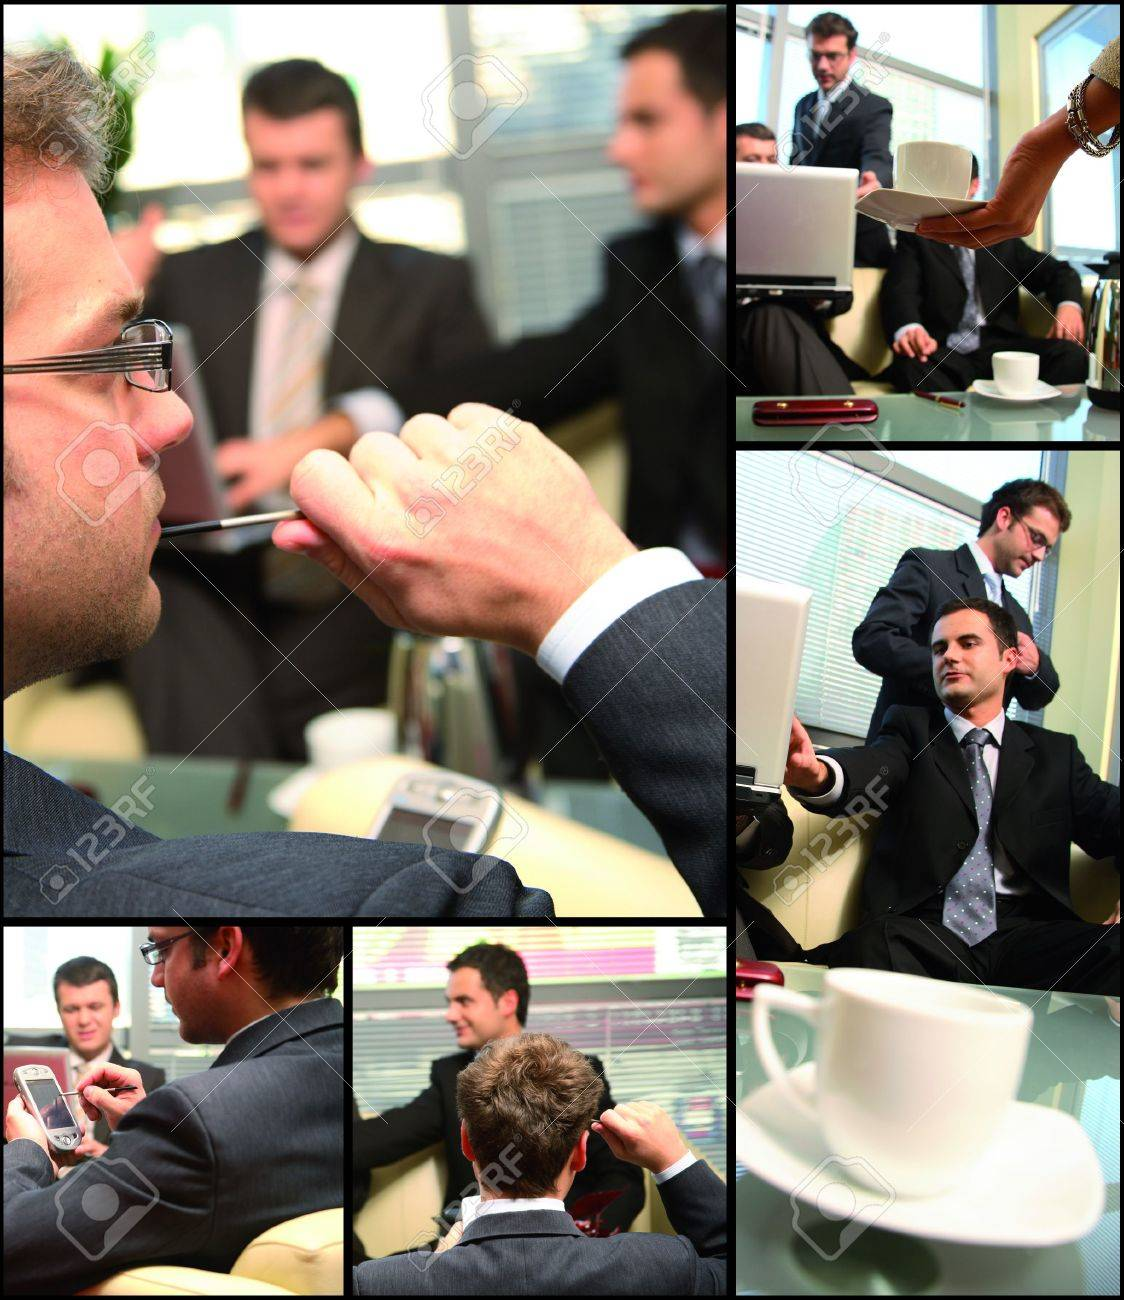 this is business group networking themed collage - interaction,thinking,cooperation Stock Photo - 2427105